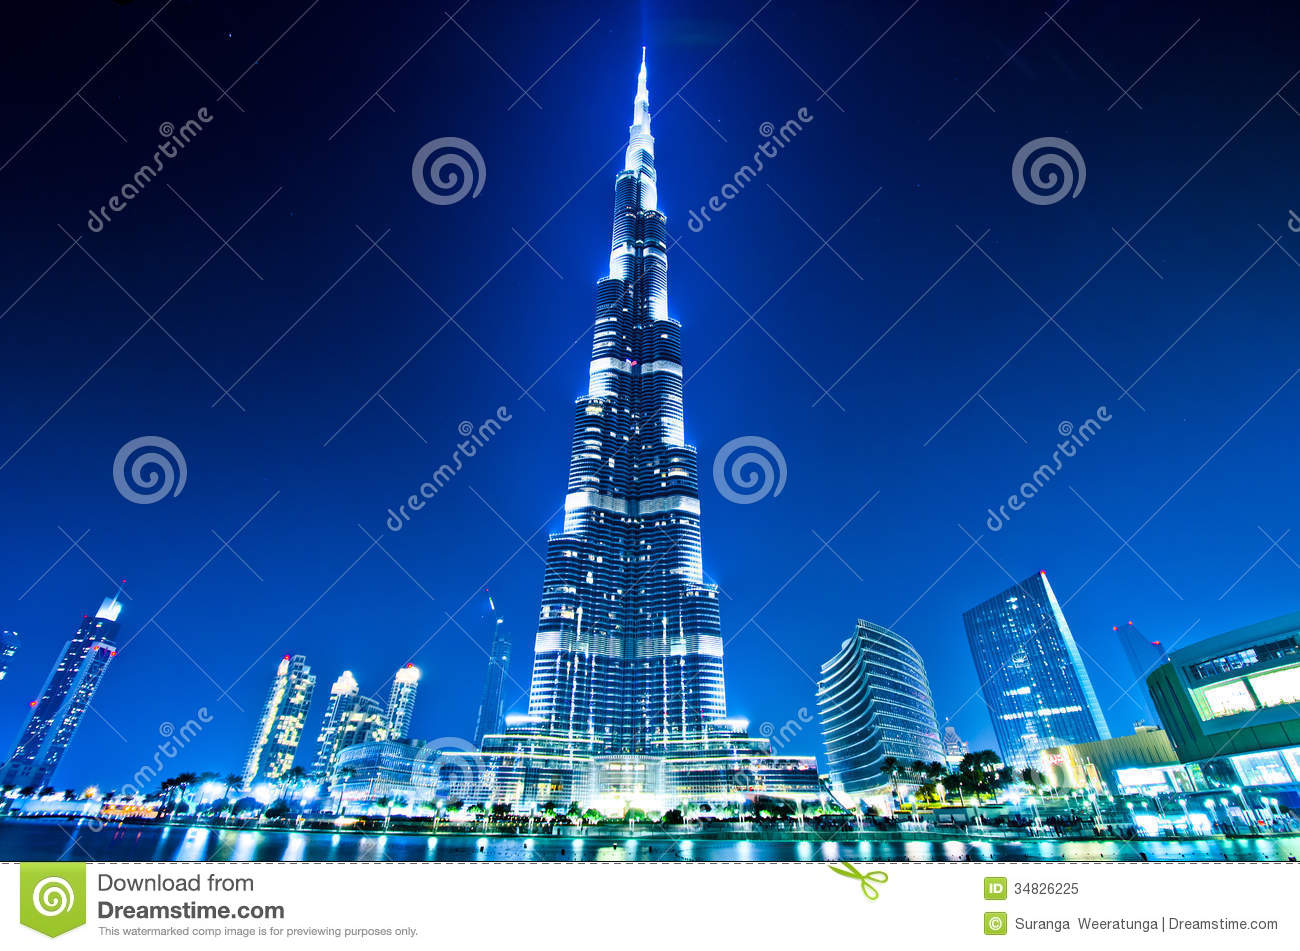 Cleaning Lady Images also Project 1111 likewise 7 Modern Arabic Villa Designs That Celebrate Opulence together with Emirates Palace Abu Dhabi United Arab Emirates in addition antonovich Design. on modern house design in uae